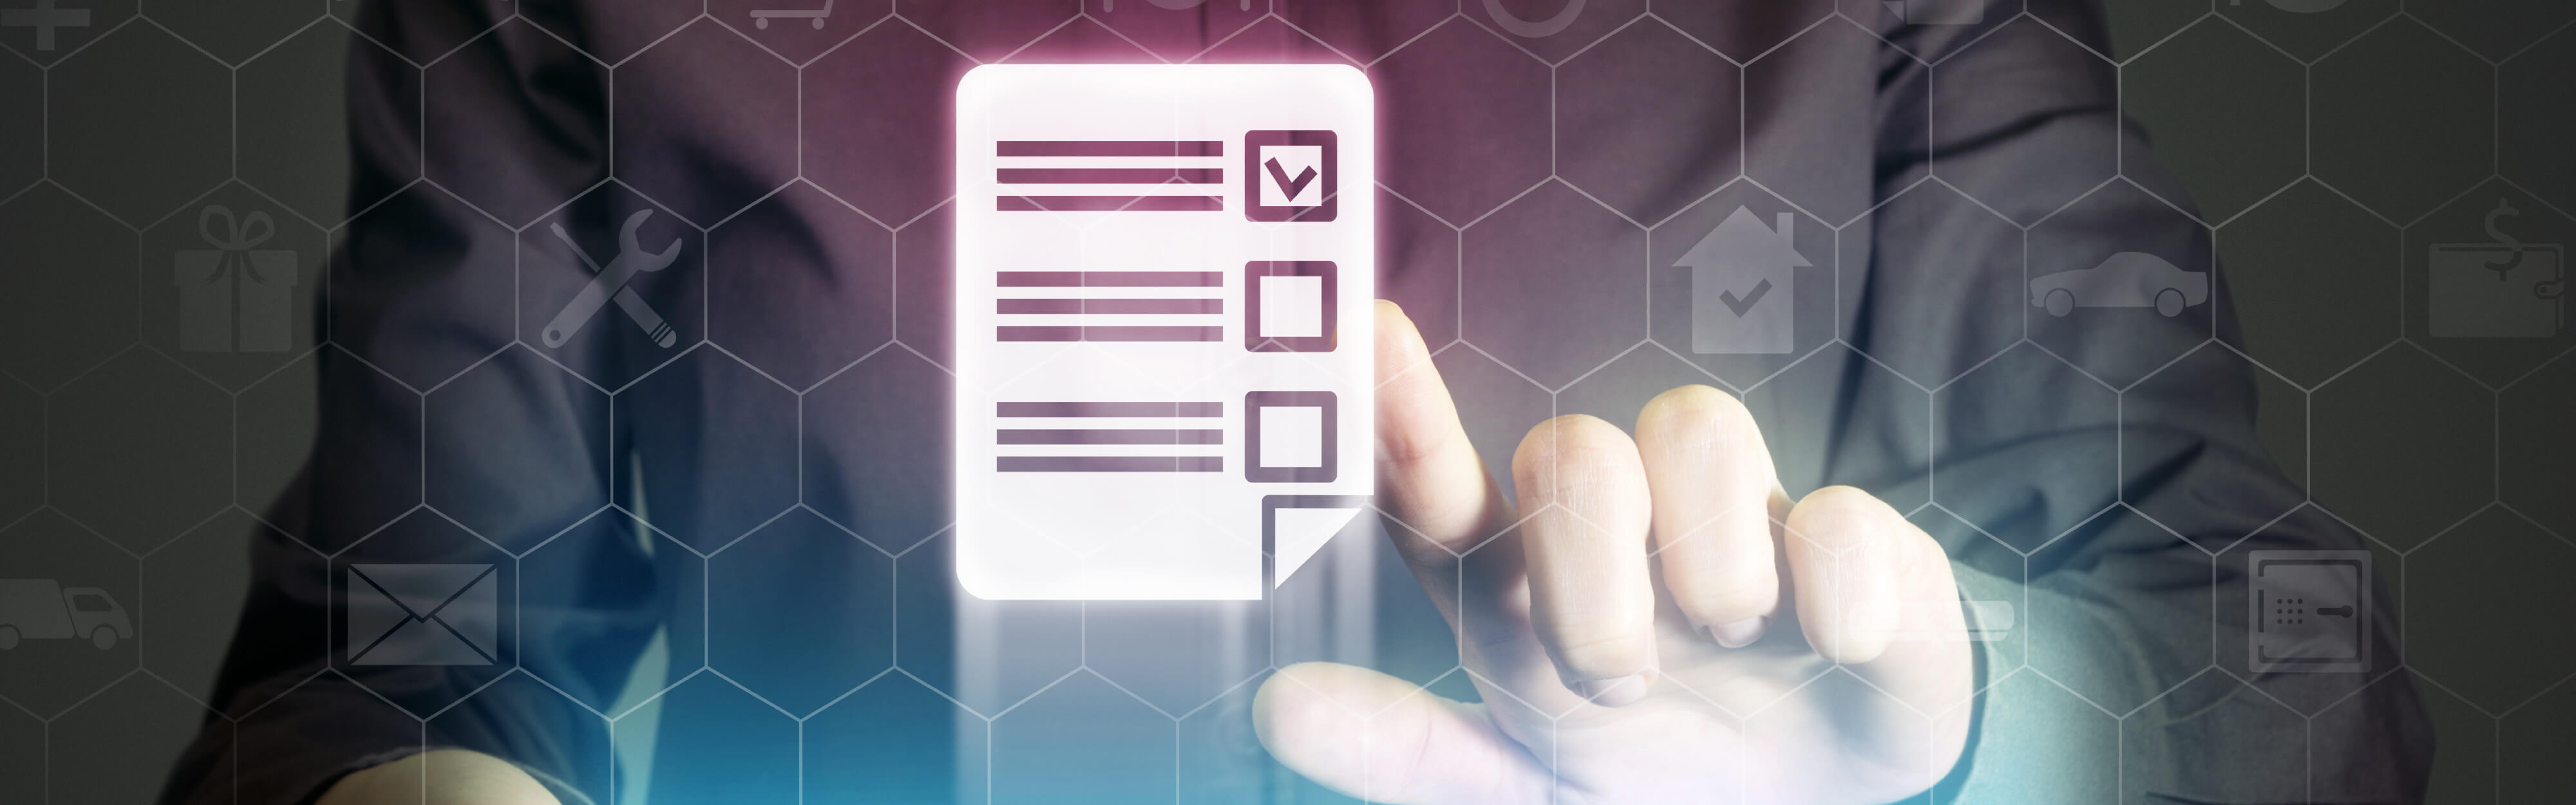 Test Management Services Help Major Global Services Company with 70% Reduction in Efforts